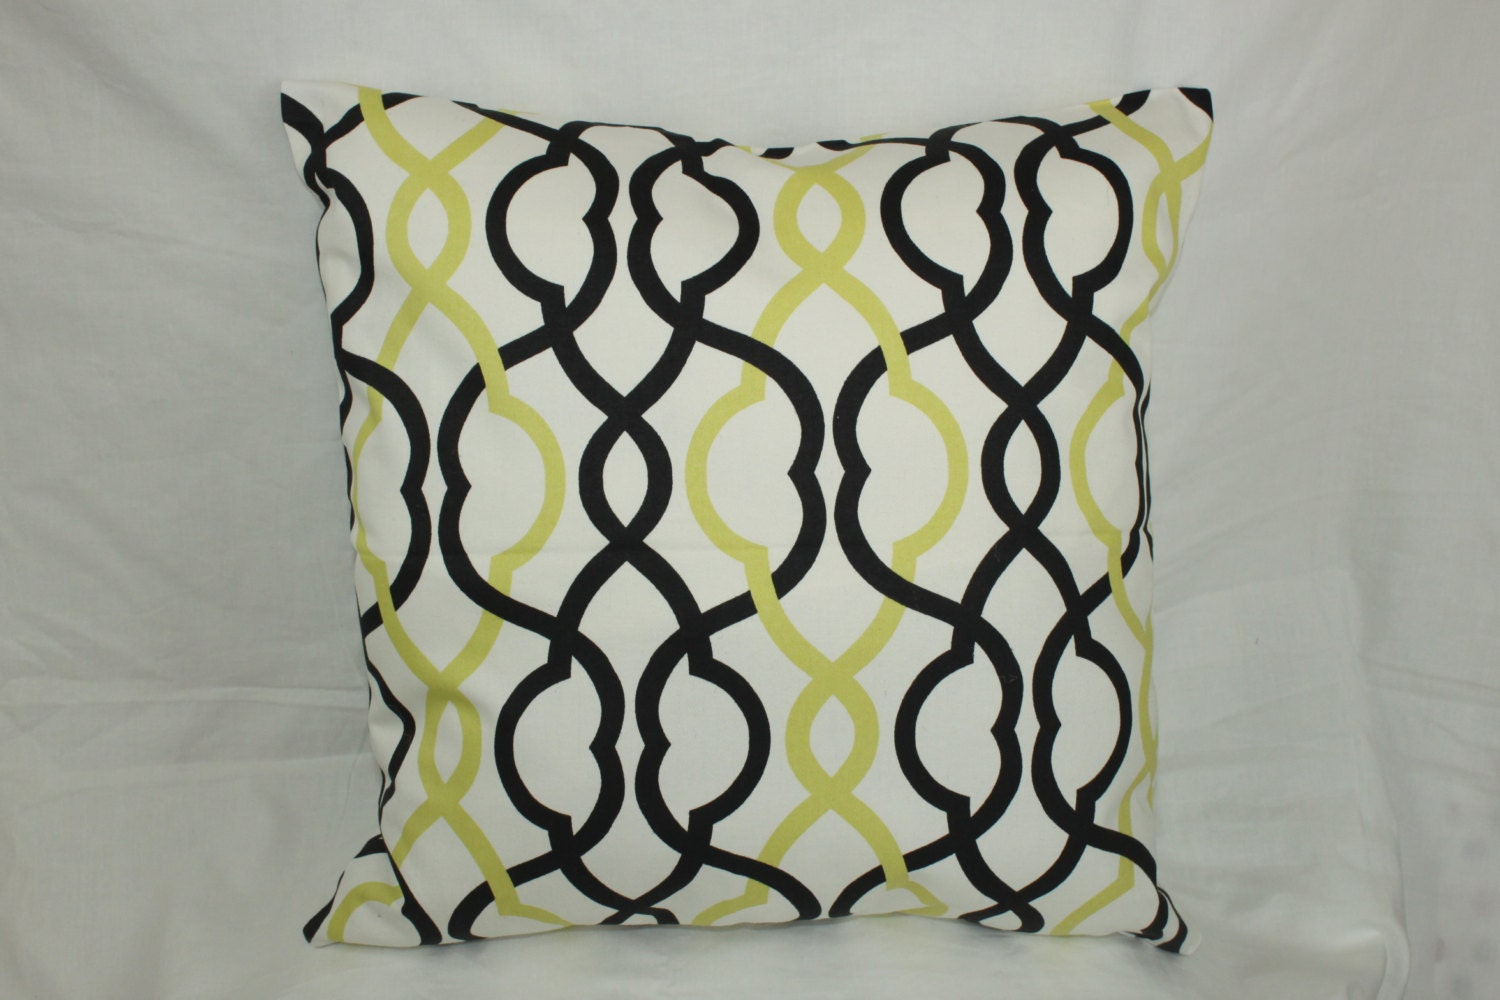 Decorative Pillow Covers With Zippers : Waverly Decorative Pillow Cover Zipper Closure by SewHomeDecor